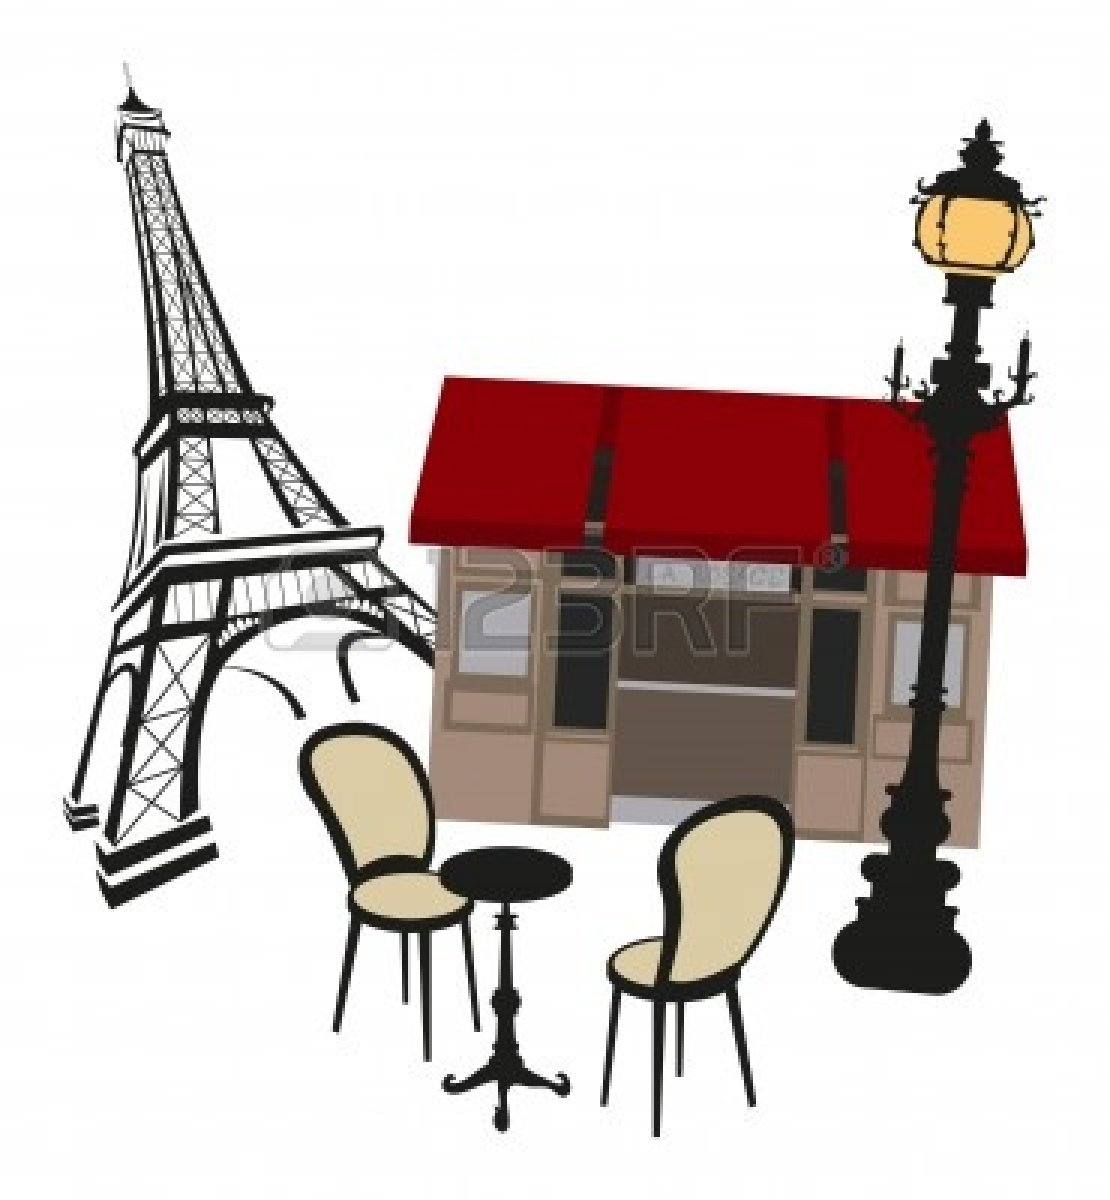 Cafe Table And Chairs Clipart | Clipart Panda - Free Clipart Images: www.clipartpanda.com/categories/cafe-table-and-chairs-clipart